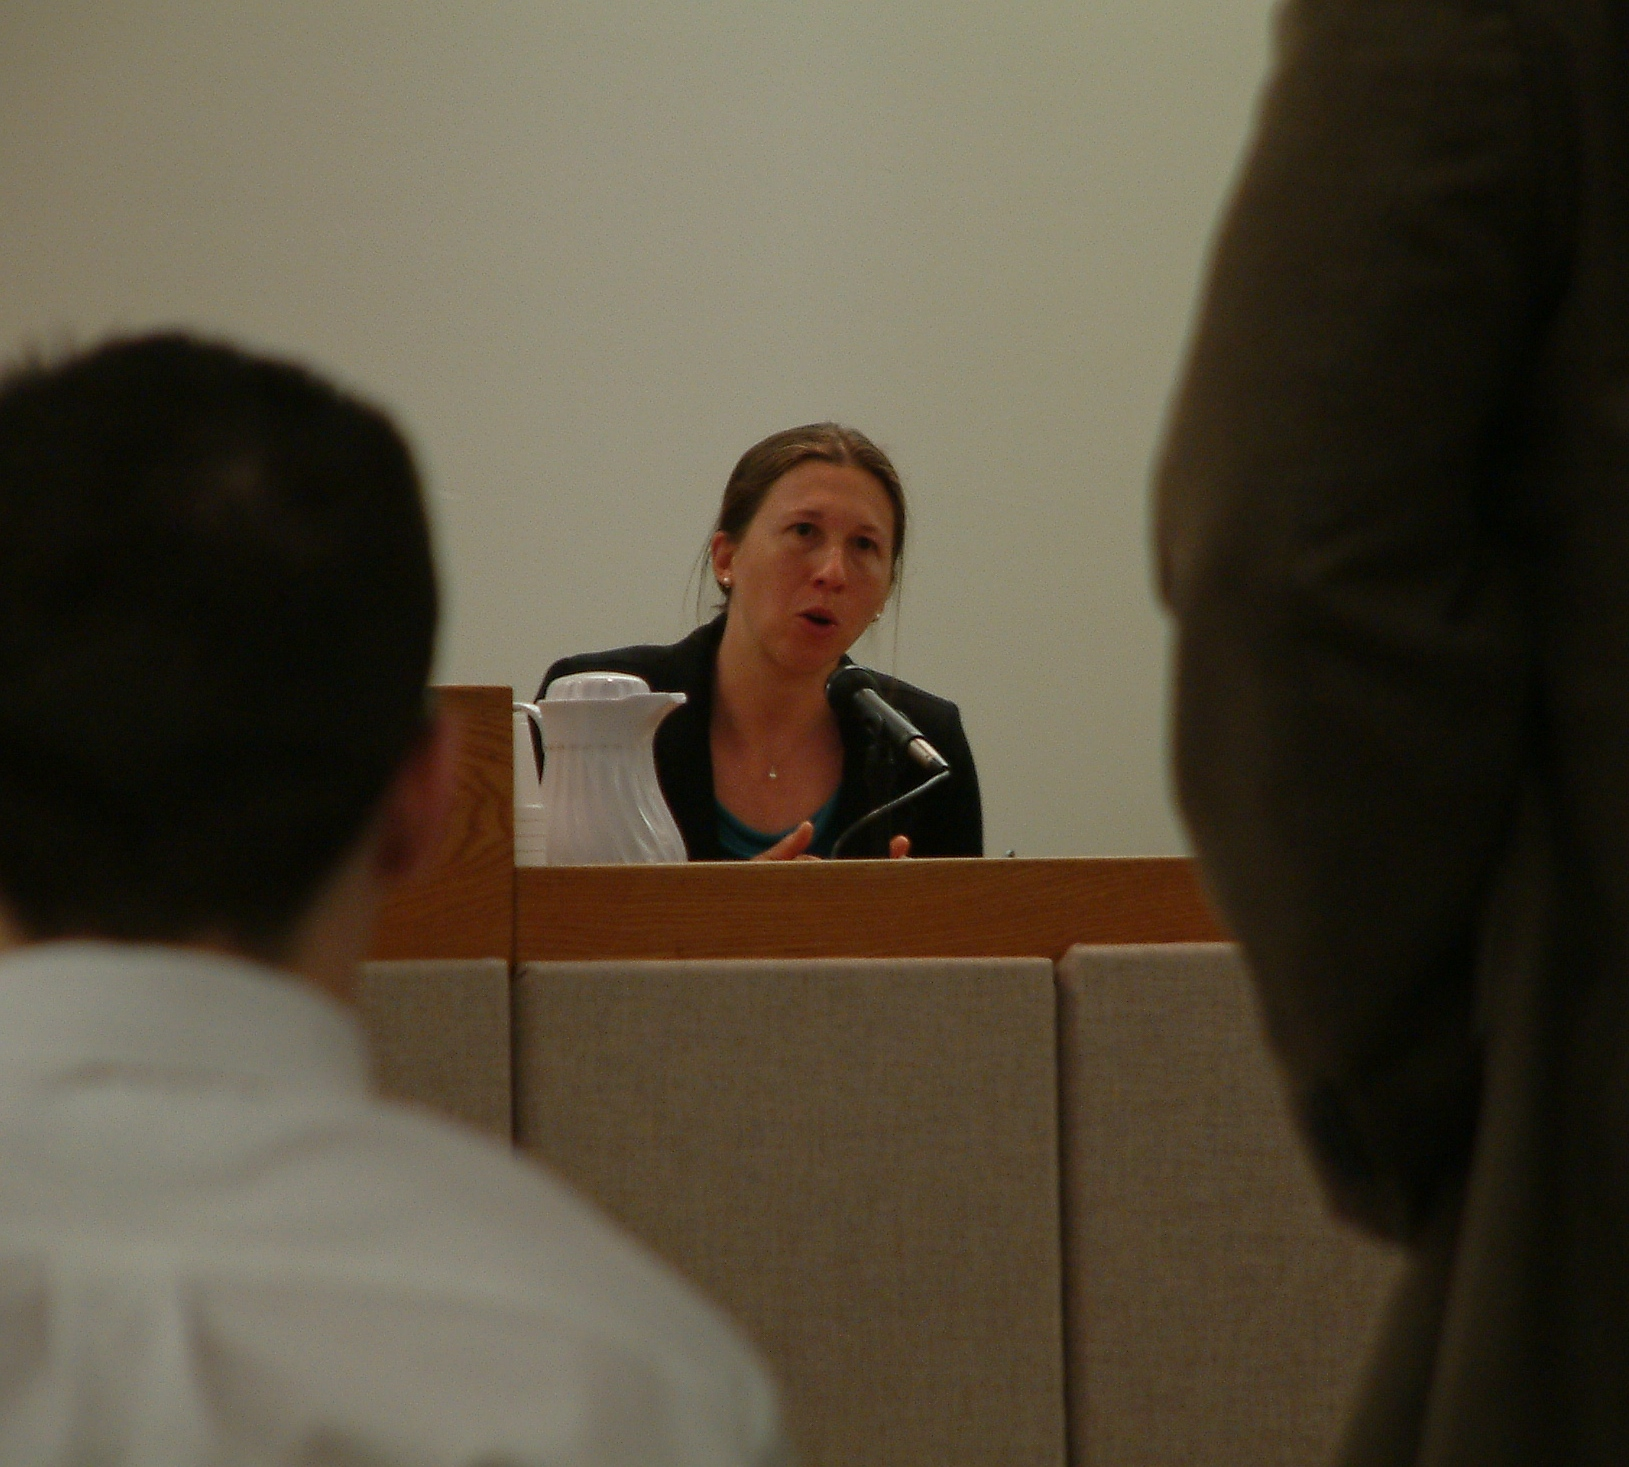 Midwife and advanced nurse practitioner Rebecca Van de Water answers a question posed by public defender Eric Hedland (right foreground) during the trial of David Paul (sitting right foreground with back to camera). Photo by Matt Miller/KTOO News